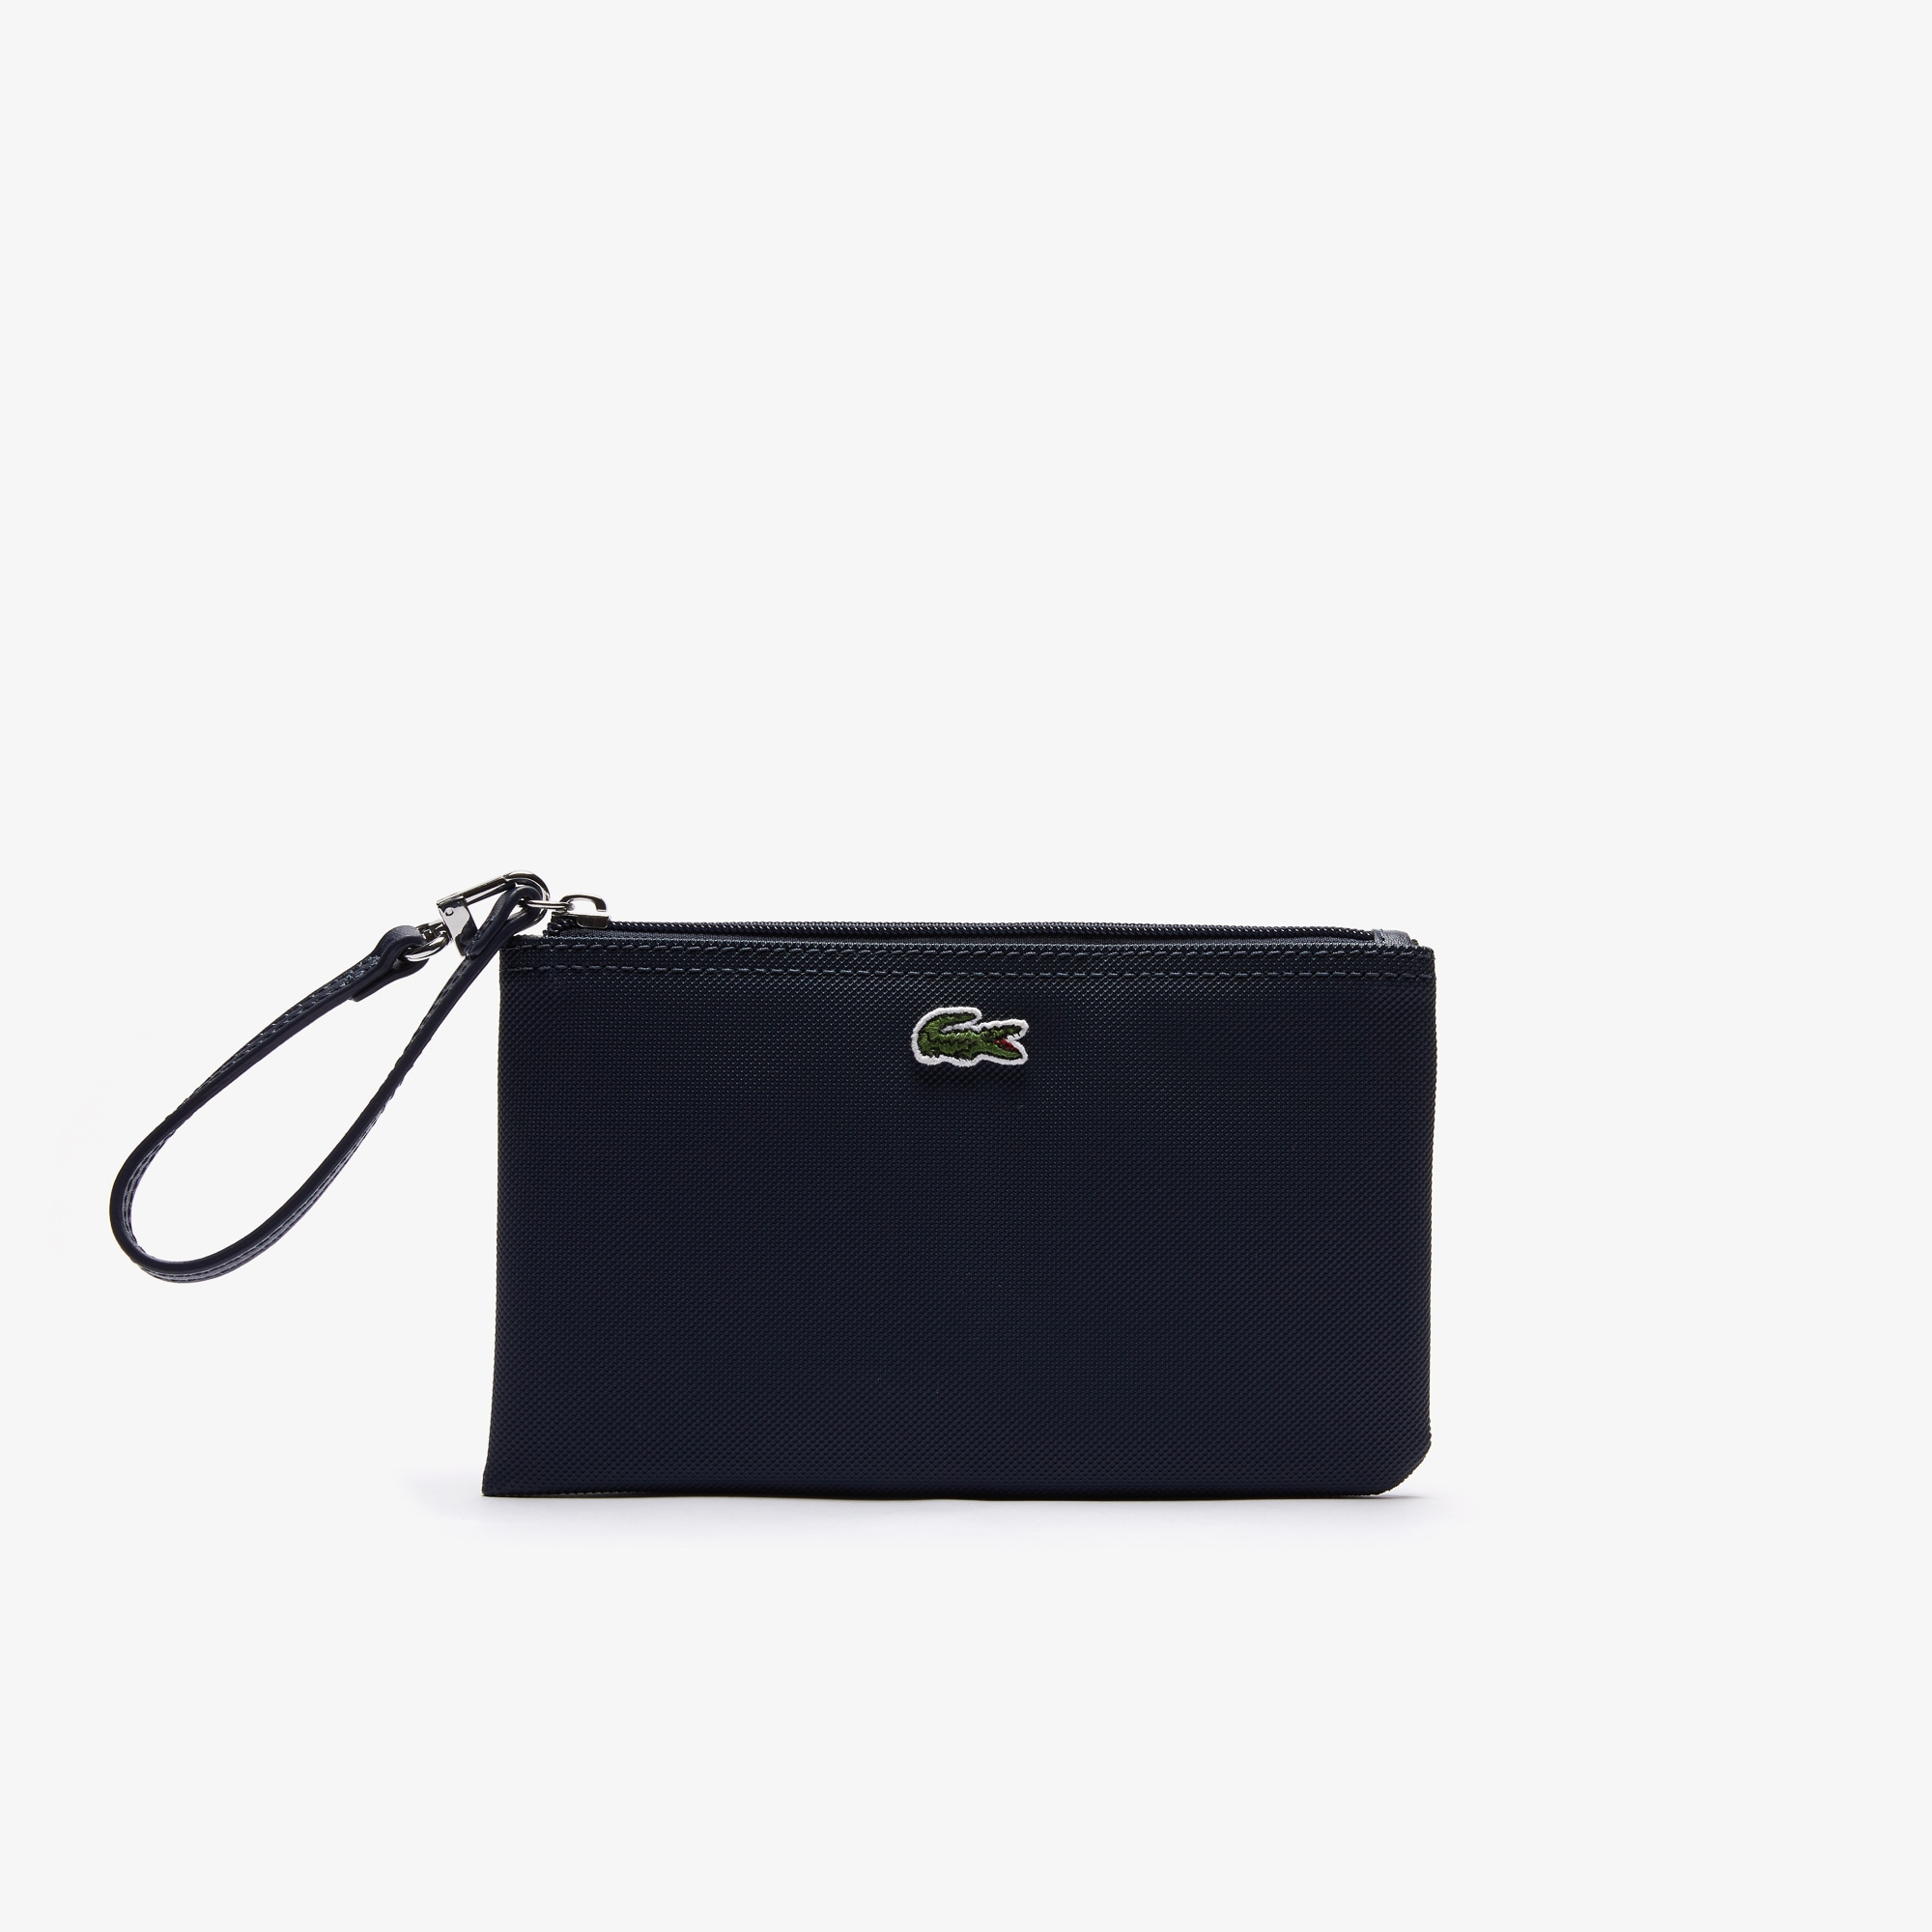 c4b11653fa5 Small Leather Goods | Women's Leather Goods | LACOSTE